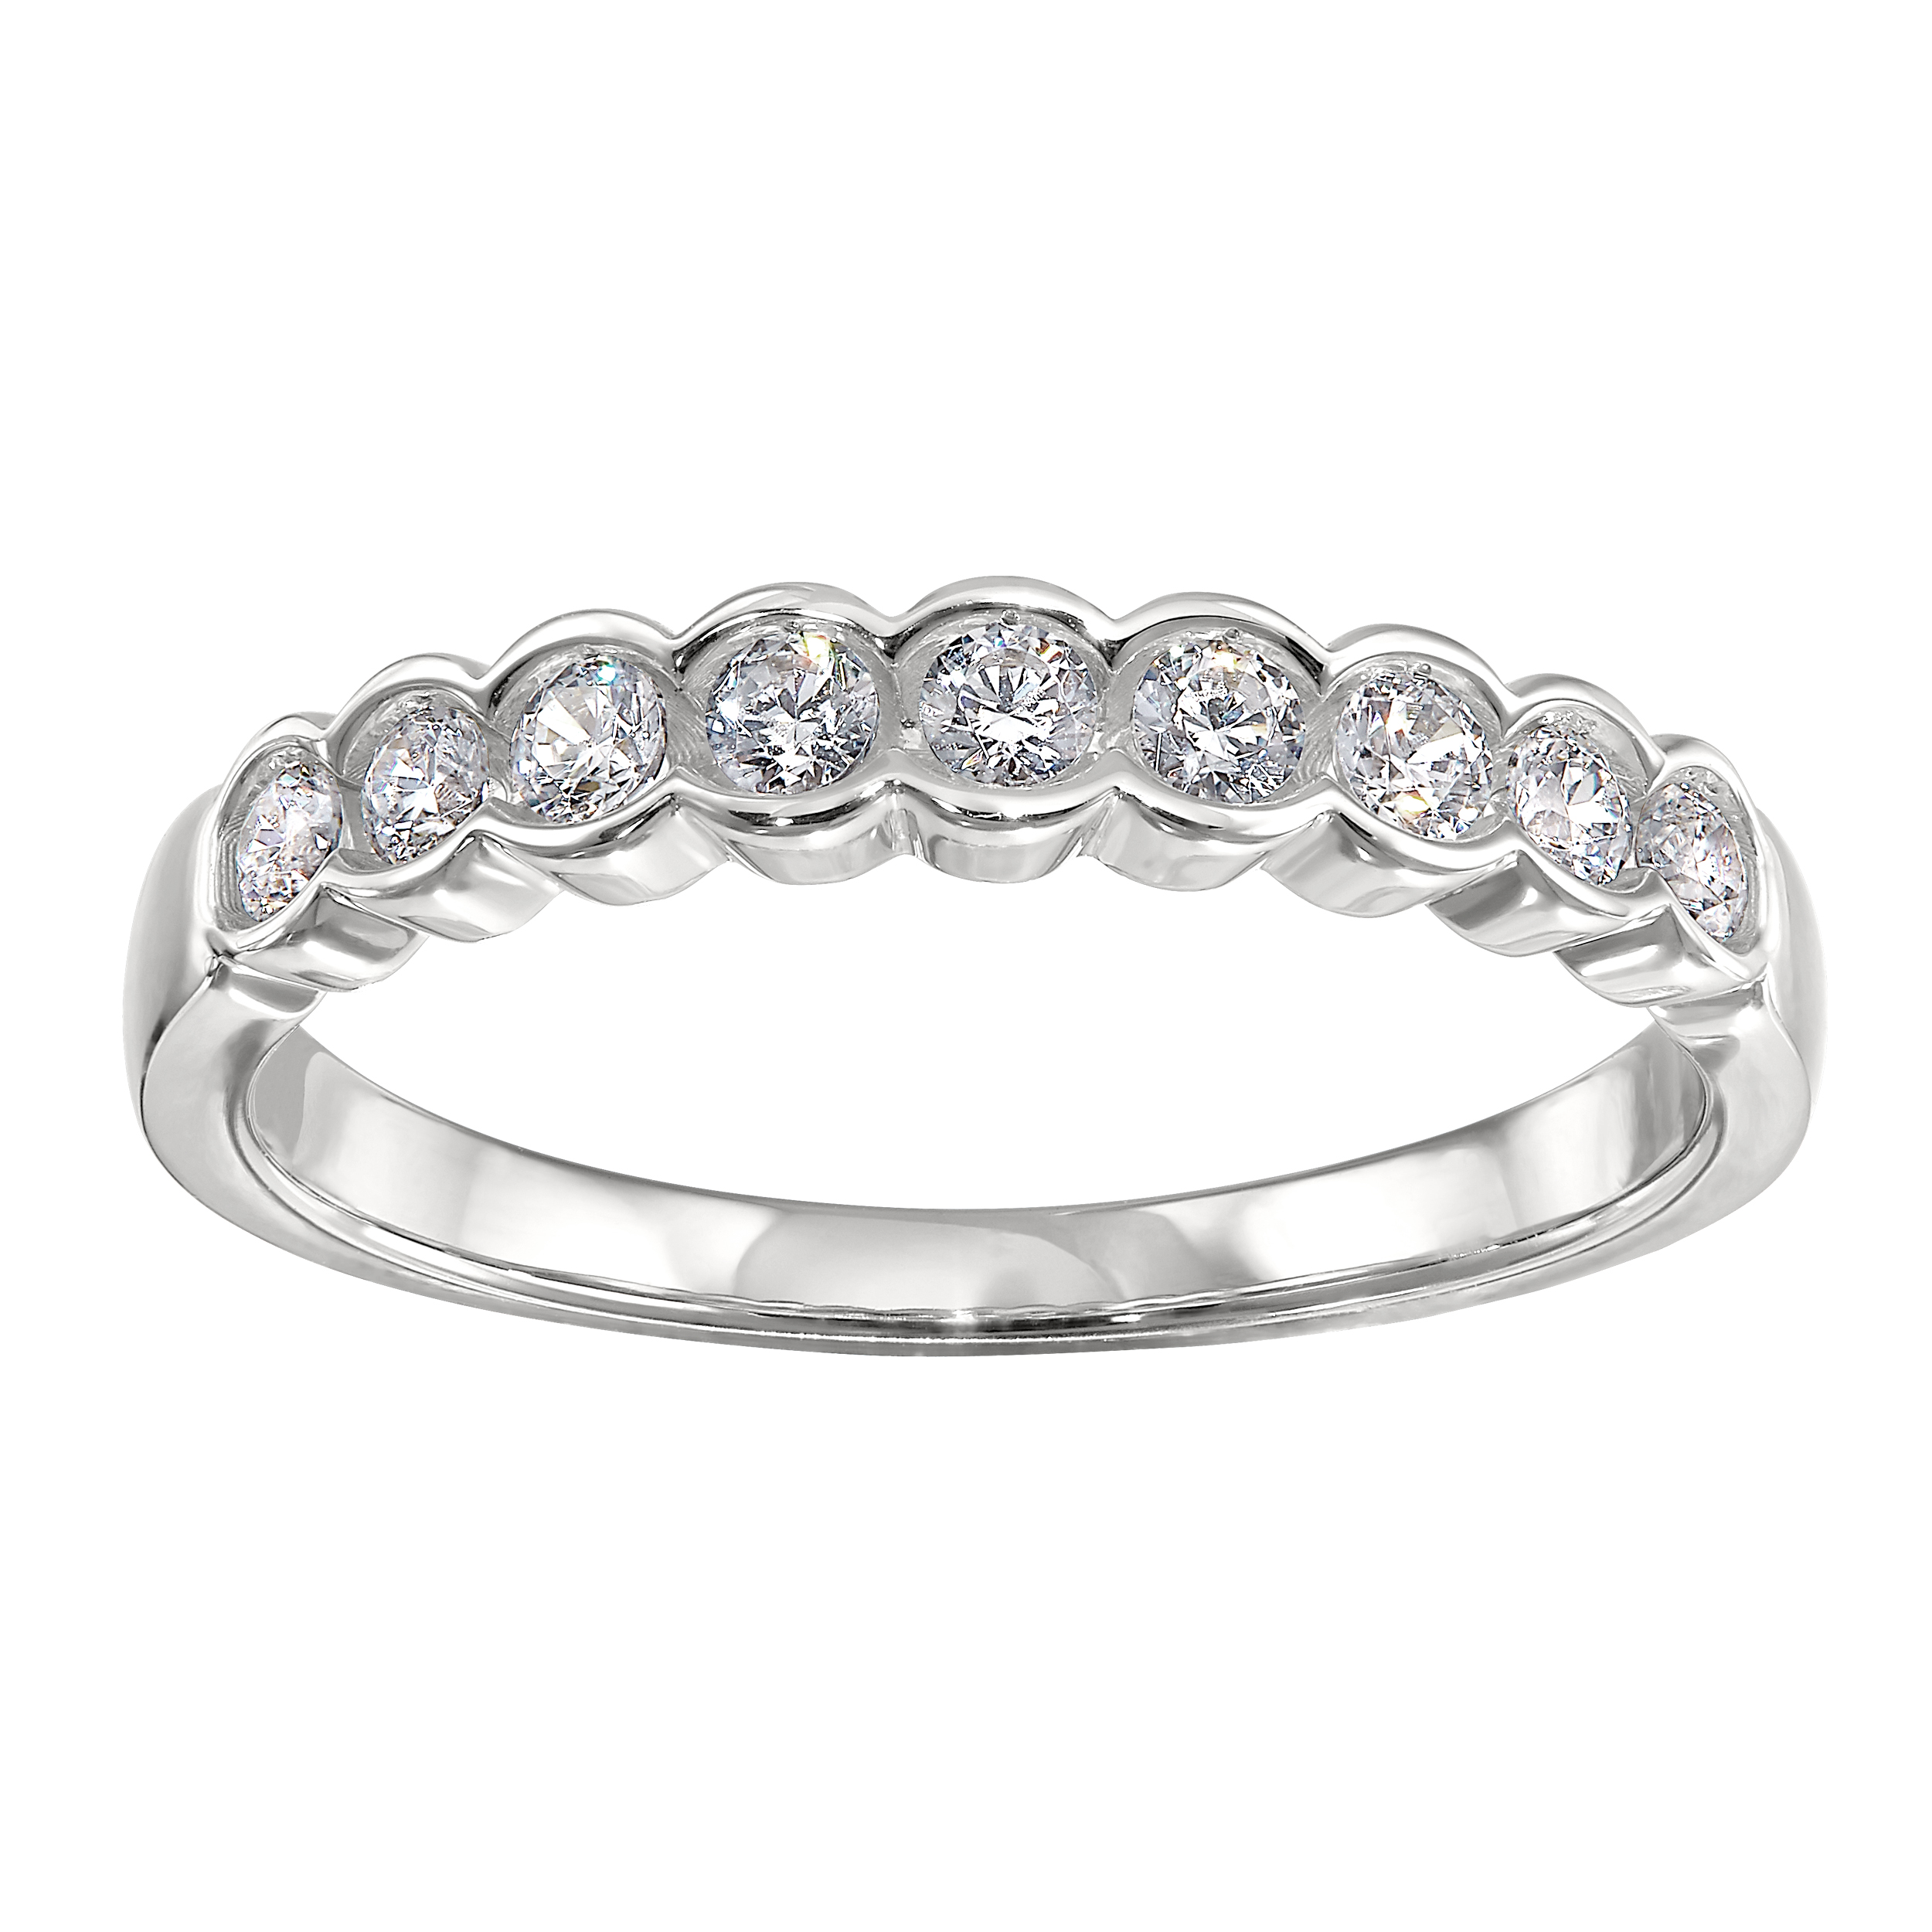 Loveglow Diamond Ring